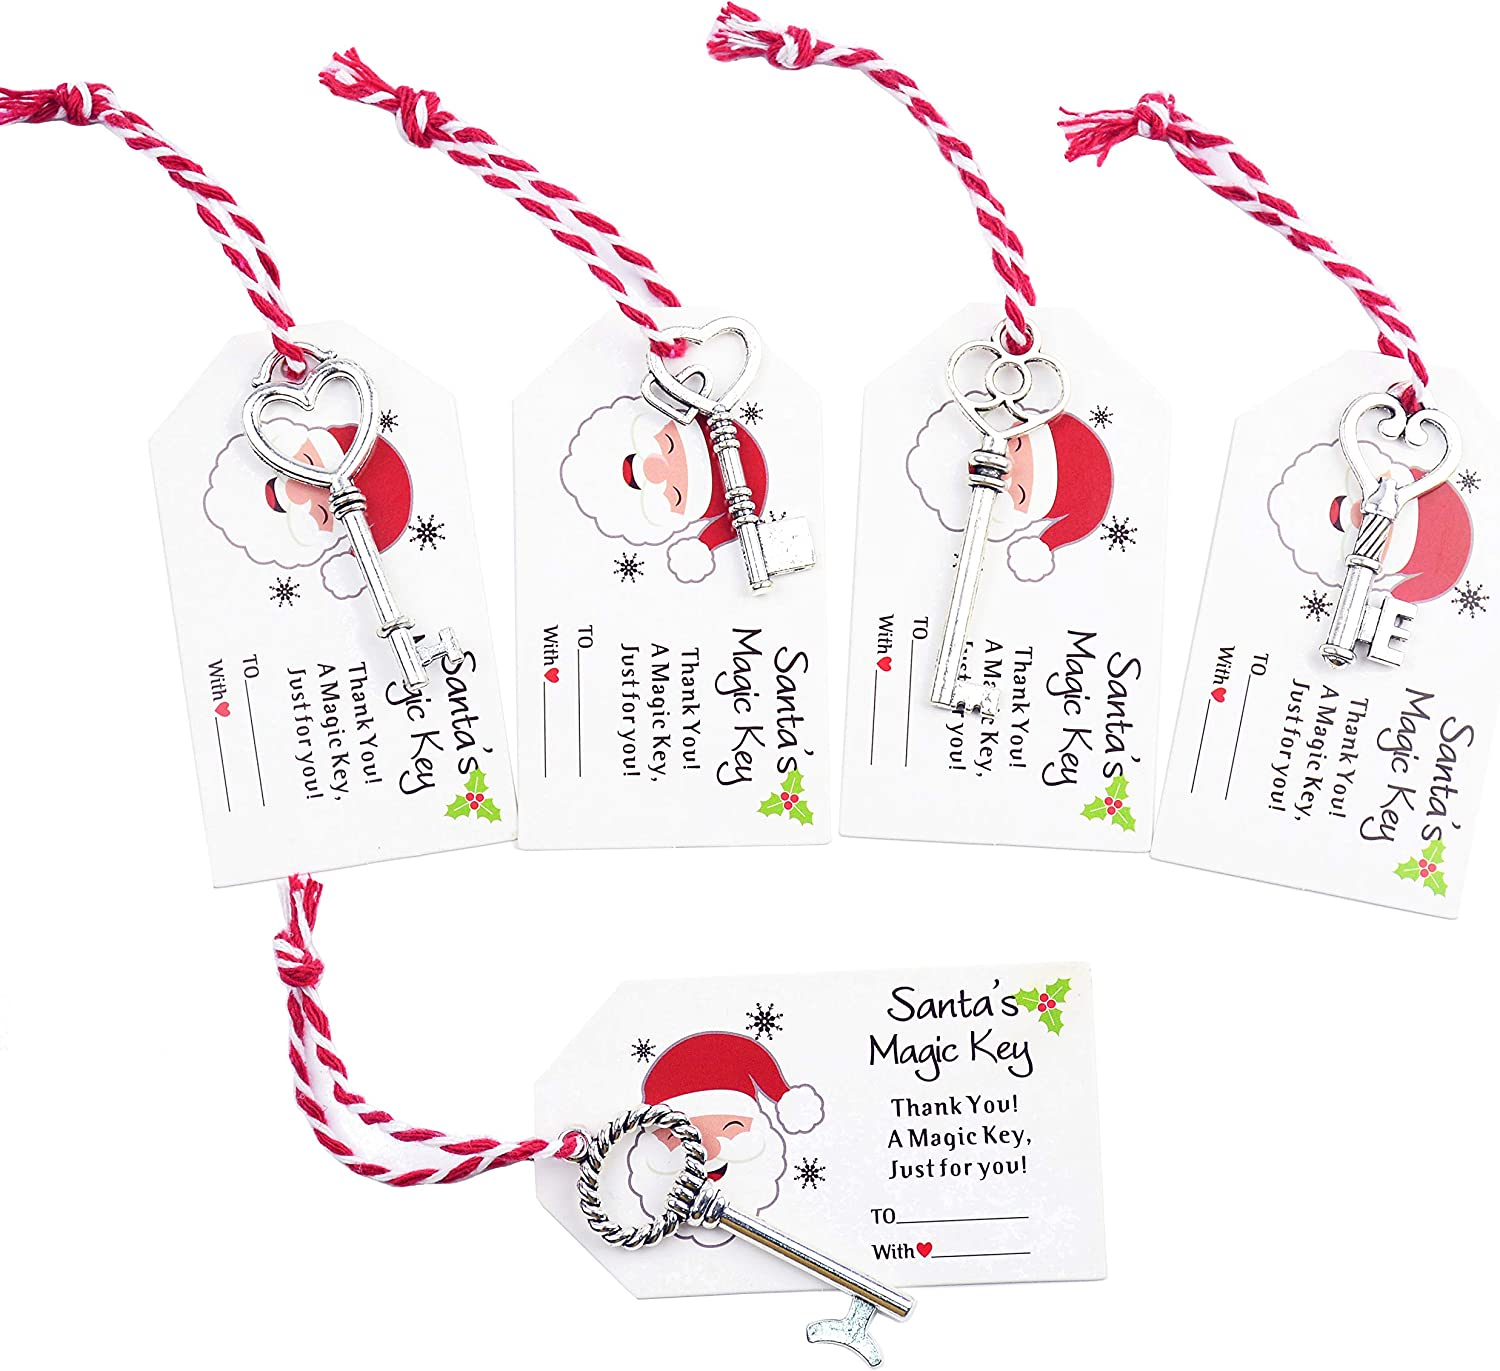 Makhry 50pcs Treasure Keys Pirate Keys with Christmas Thank You Tags Cards Soft Cord for Christmas Souvenir Hanging Ornament Tree Decor (Silver)